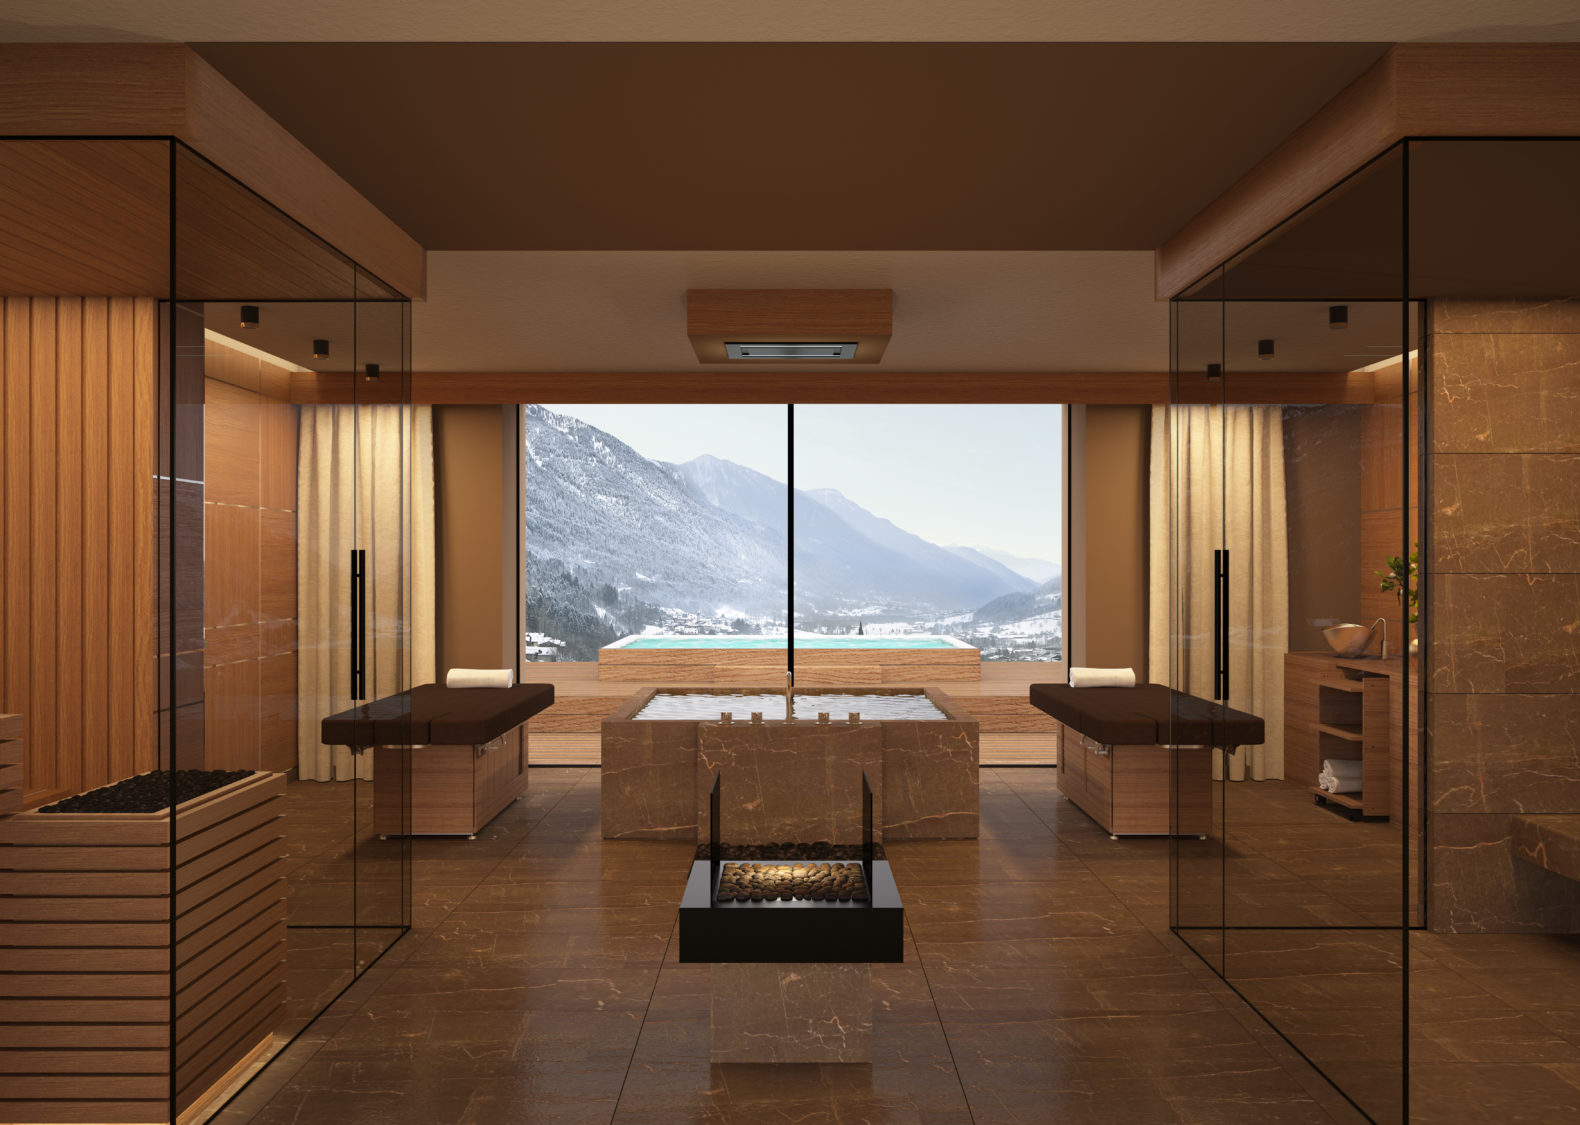 royal-suite-spa-massage-treatment-hottub-mountain-pool-view-lefay-resorts-dolomiti-italy